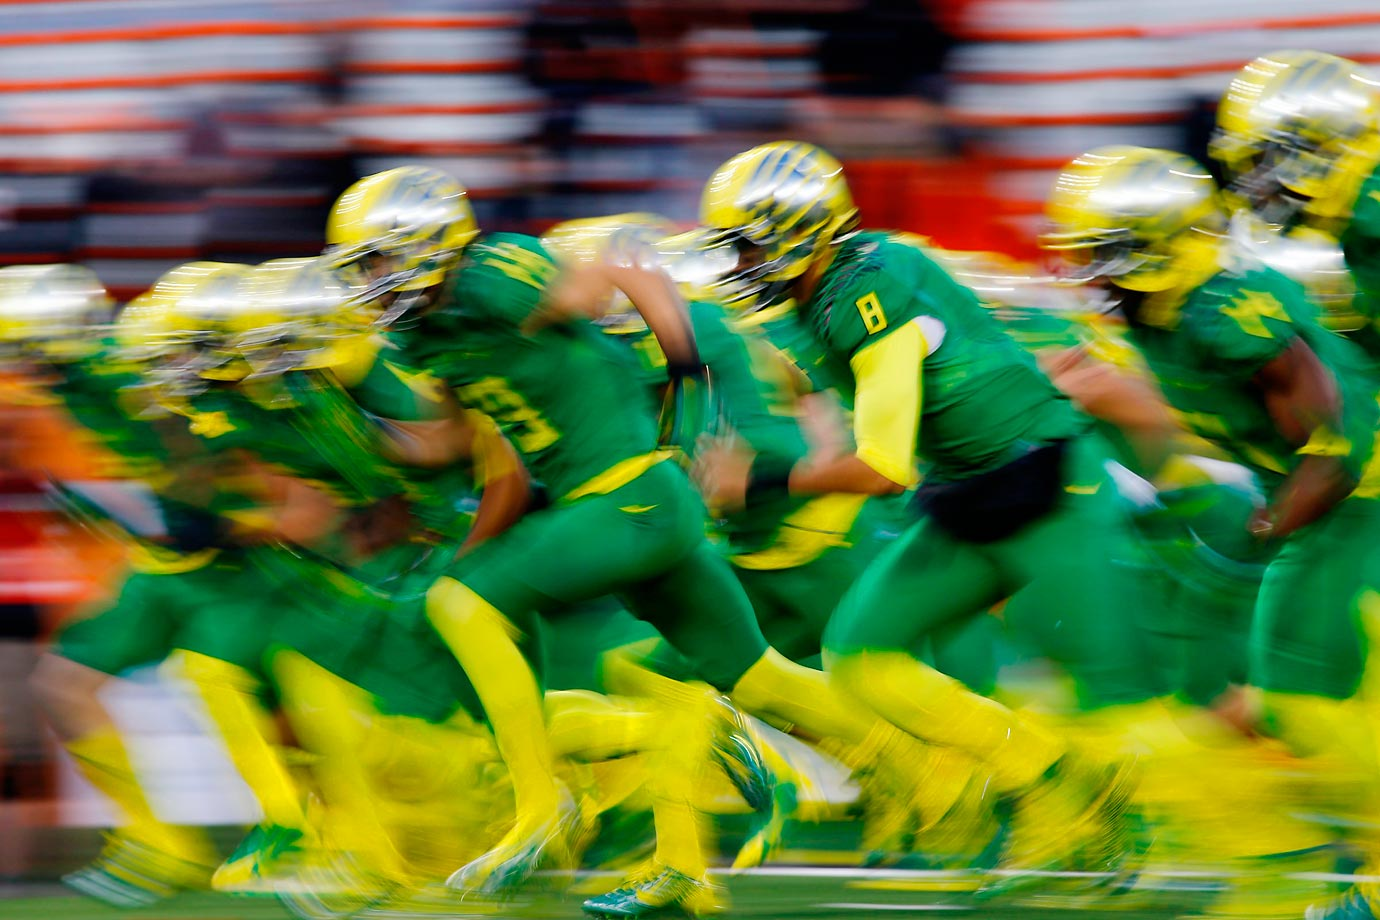 The Oregon Ducks take the field for their game against the Oregon State Beavers.